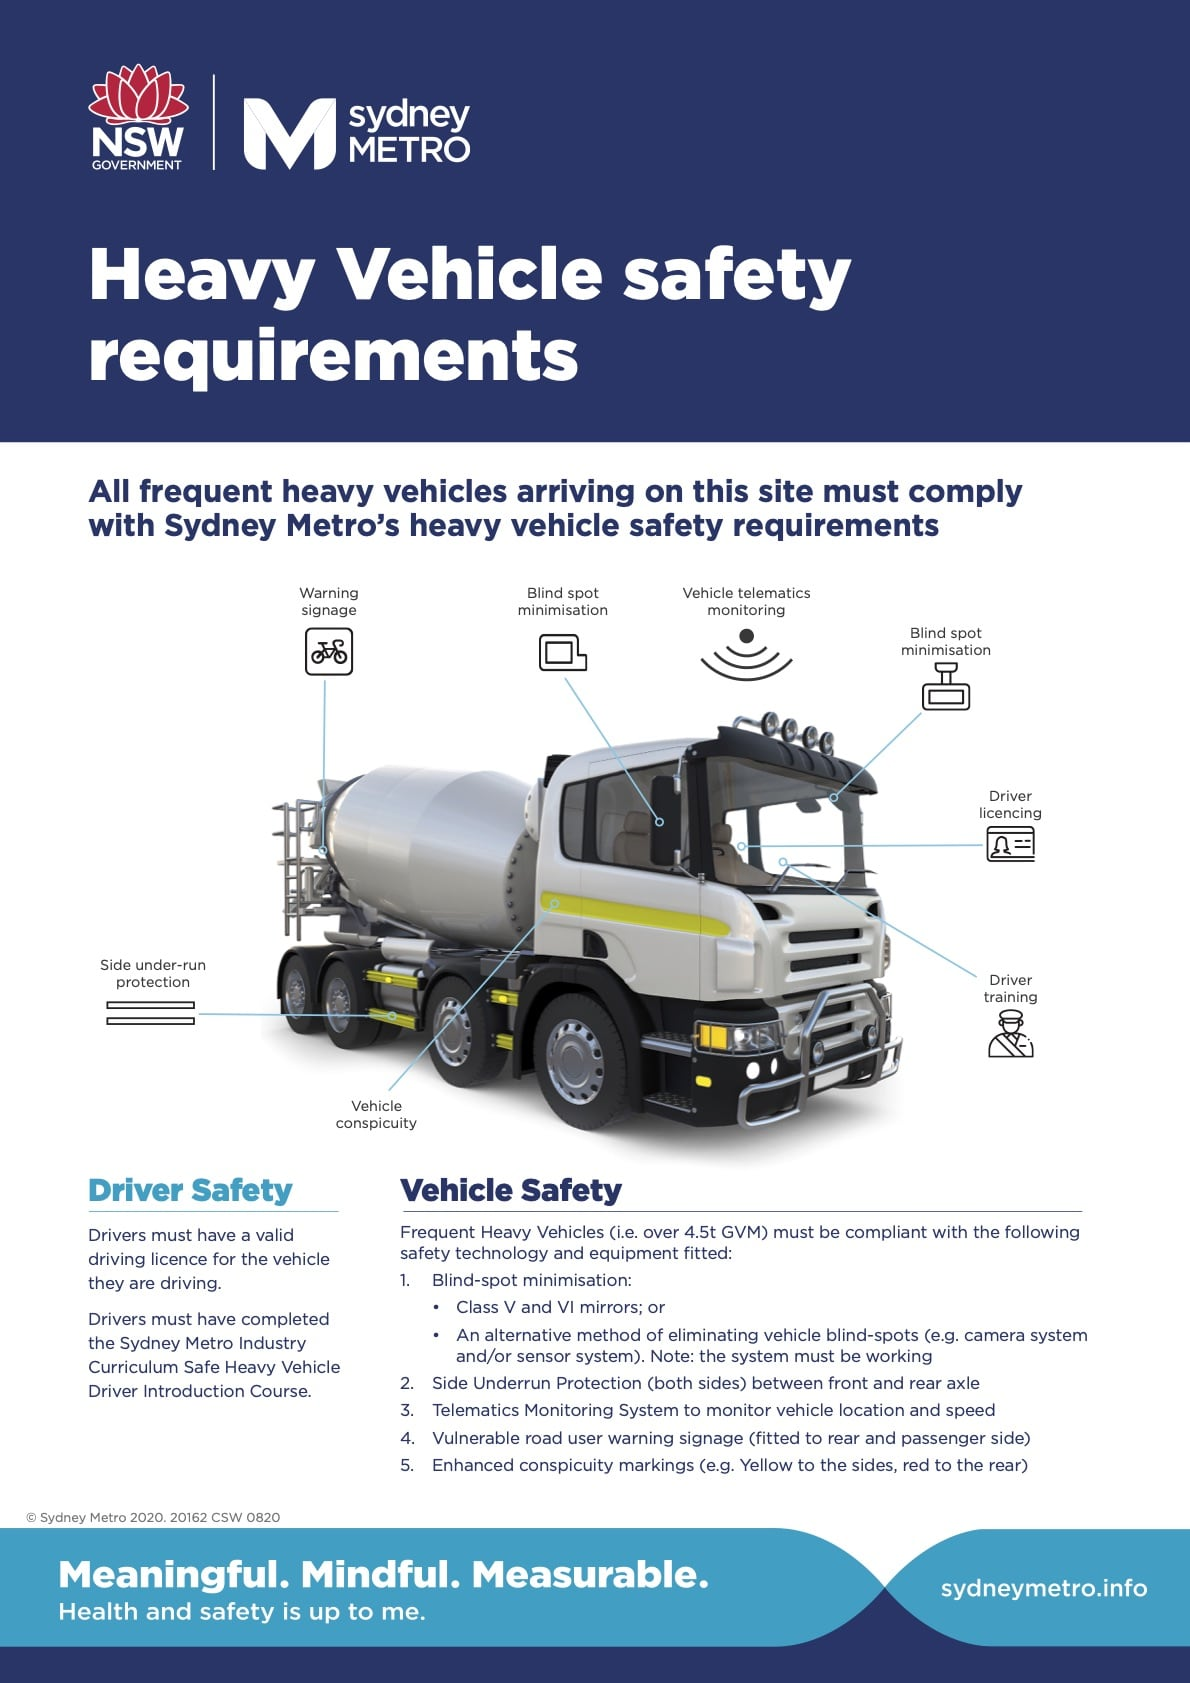 Heavy Vehicle Specifications